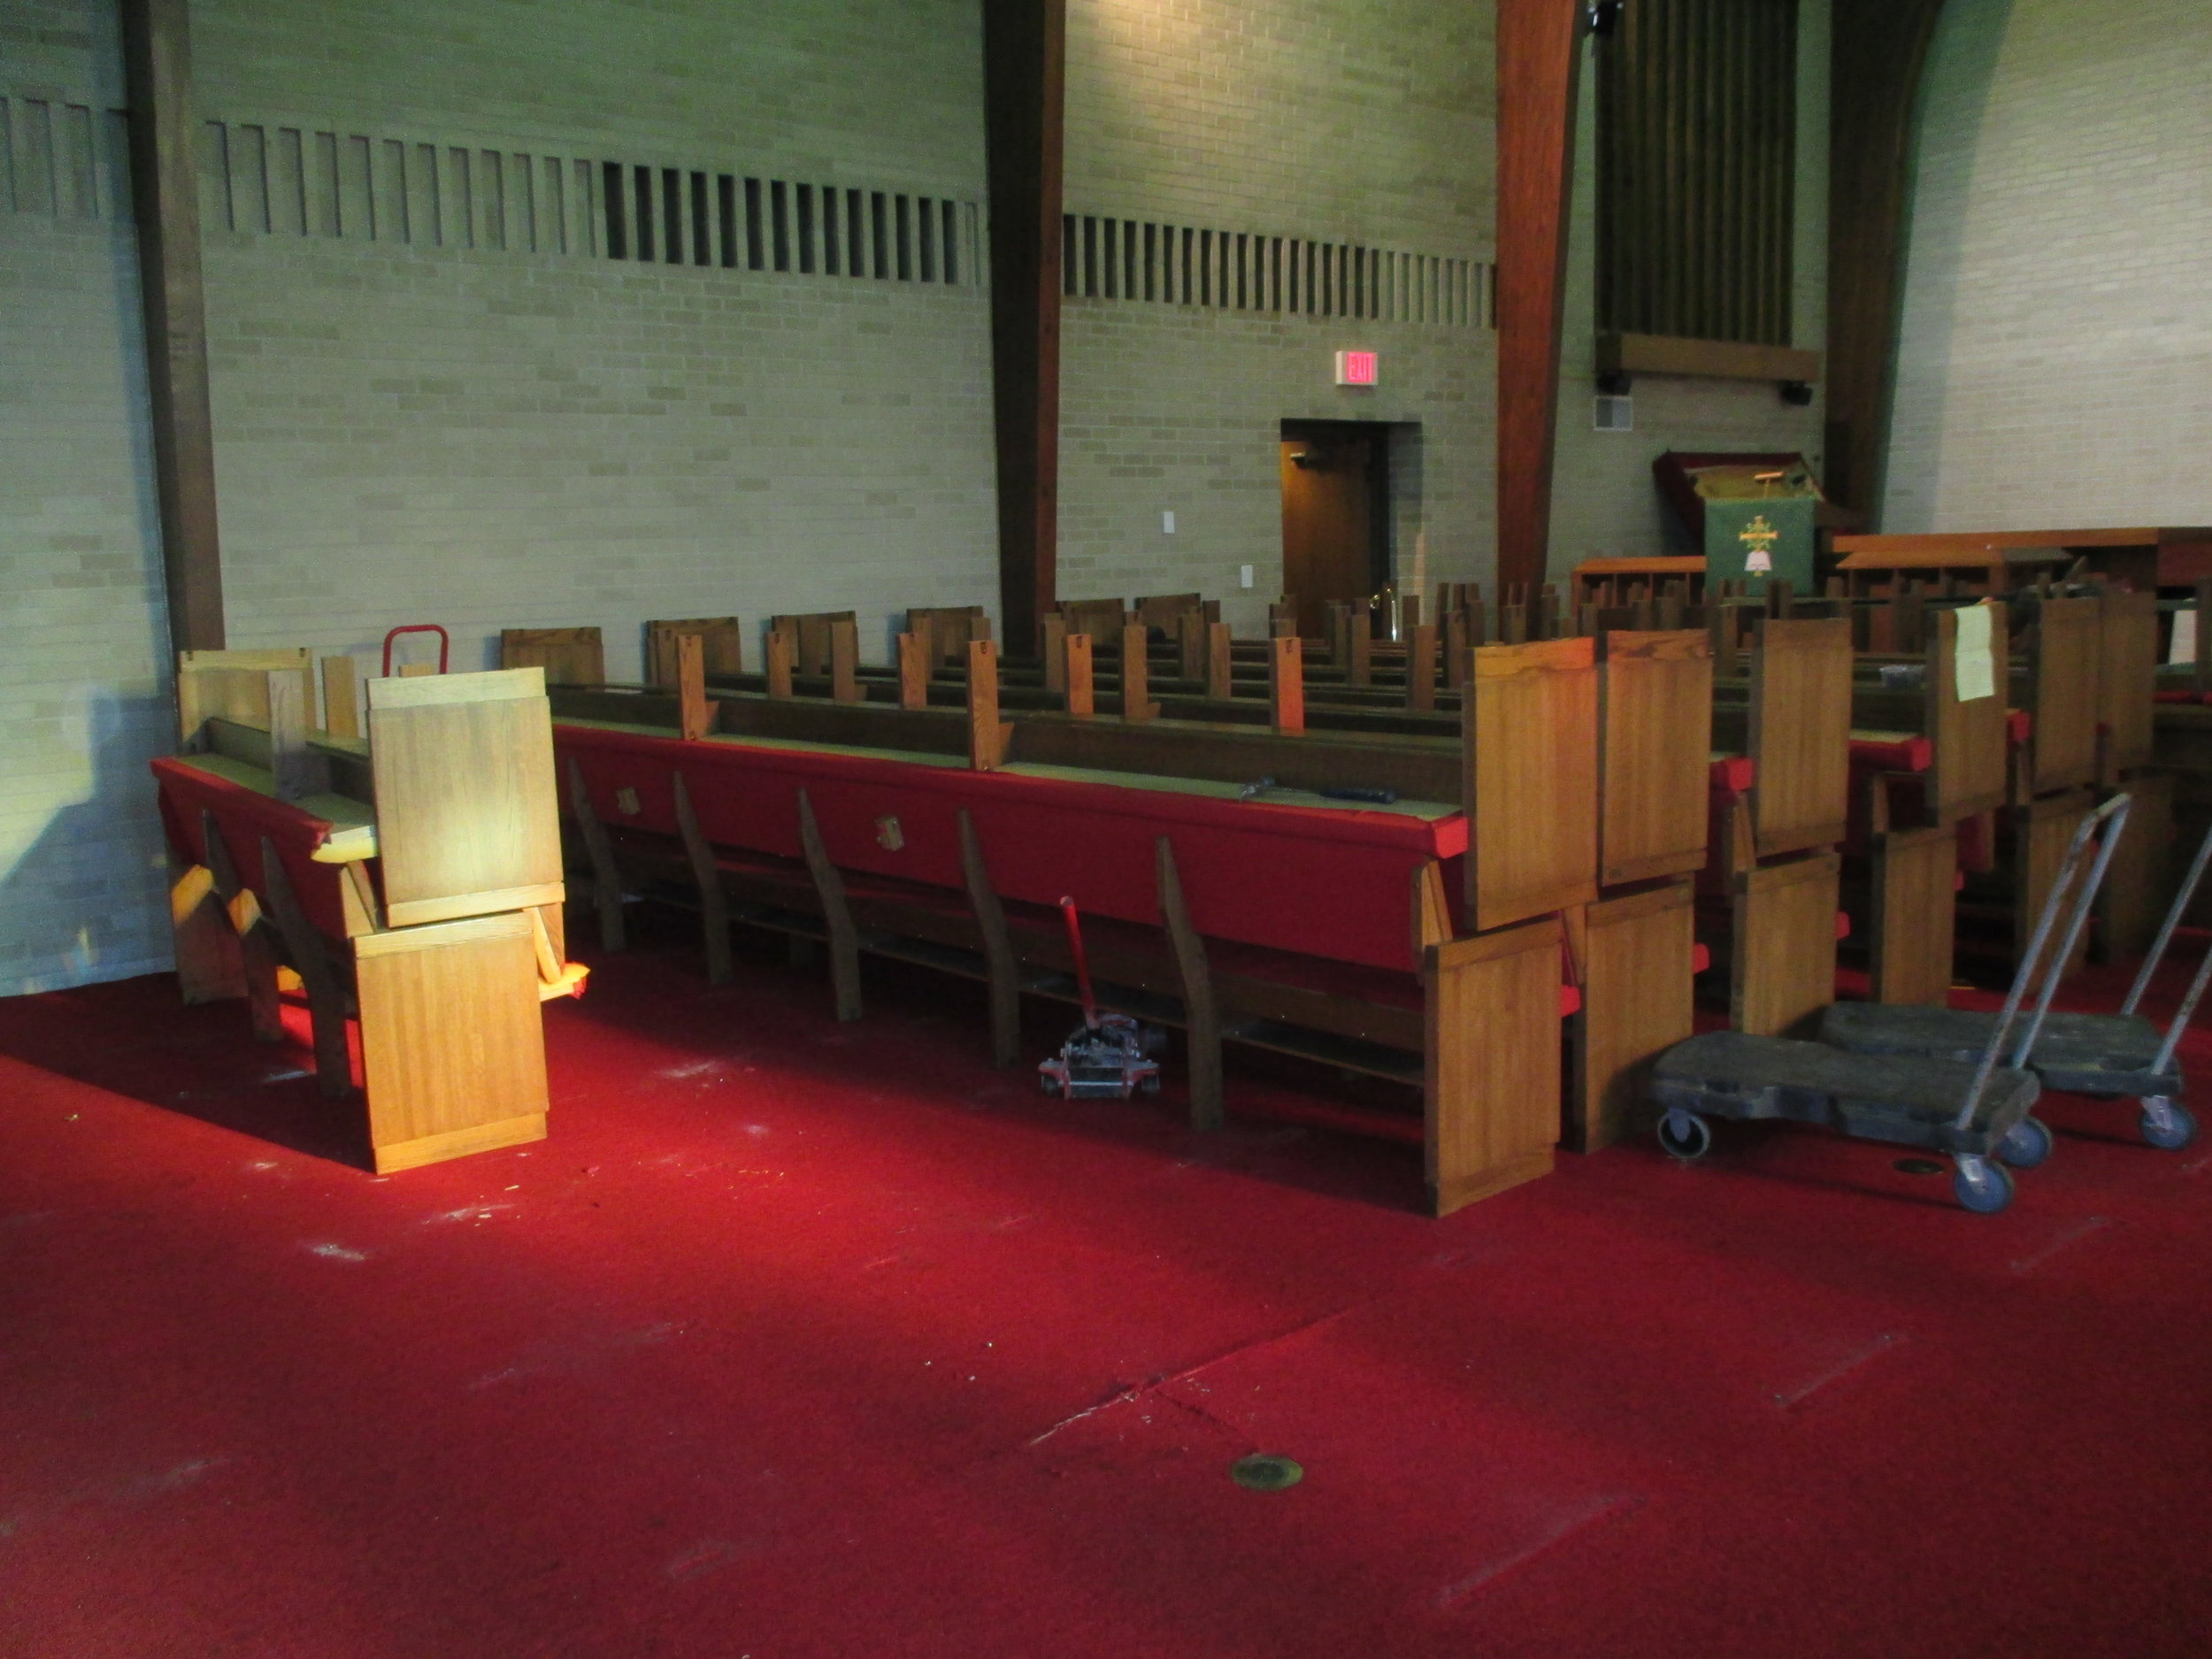 shortened pews for wheelchair seating